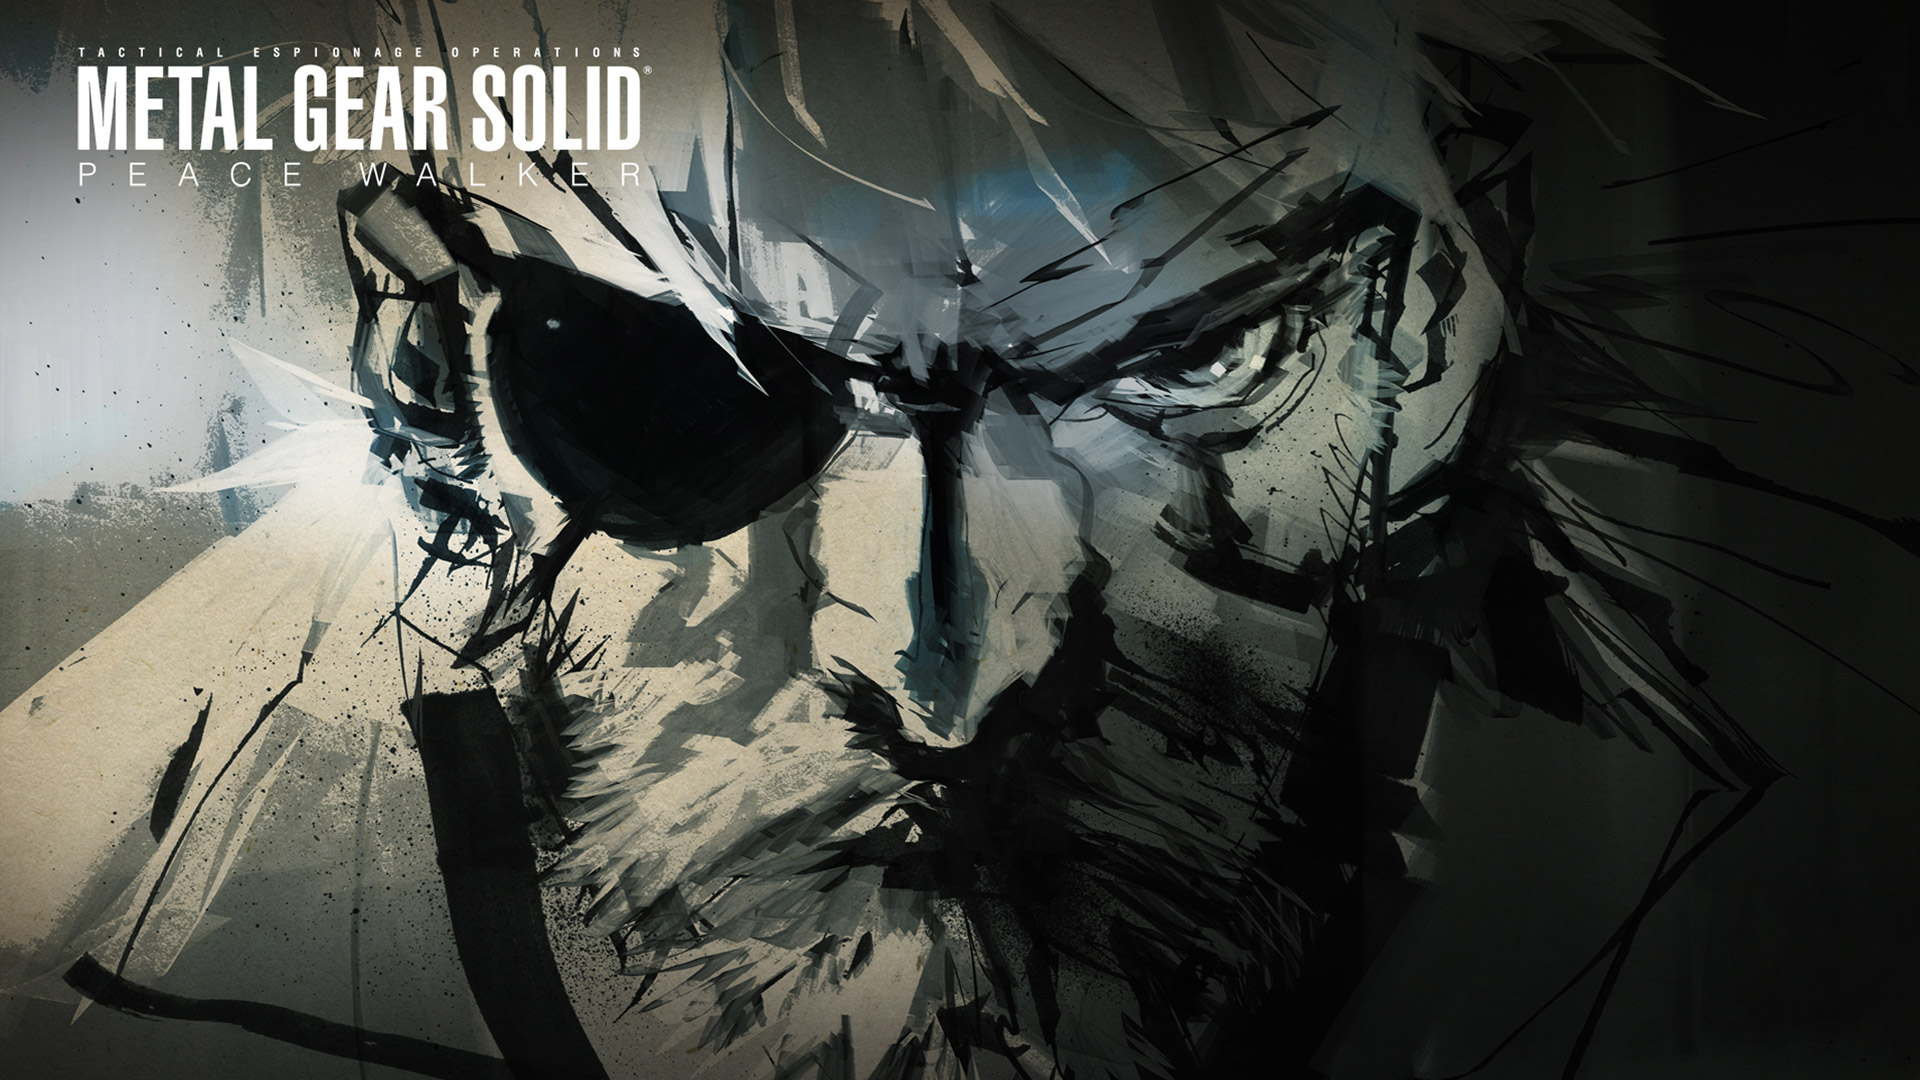 Metal Gear Solid Peace Walker wallpaper 8